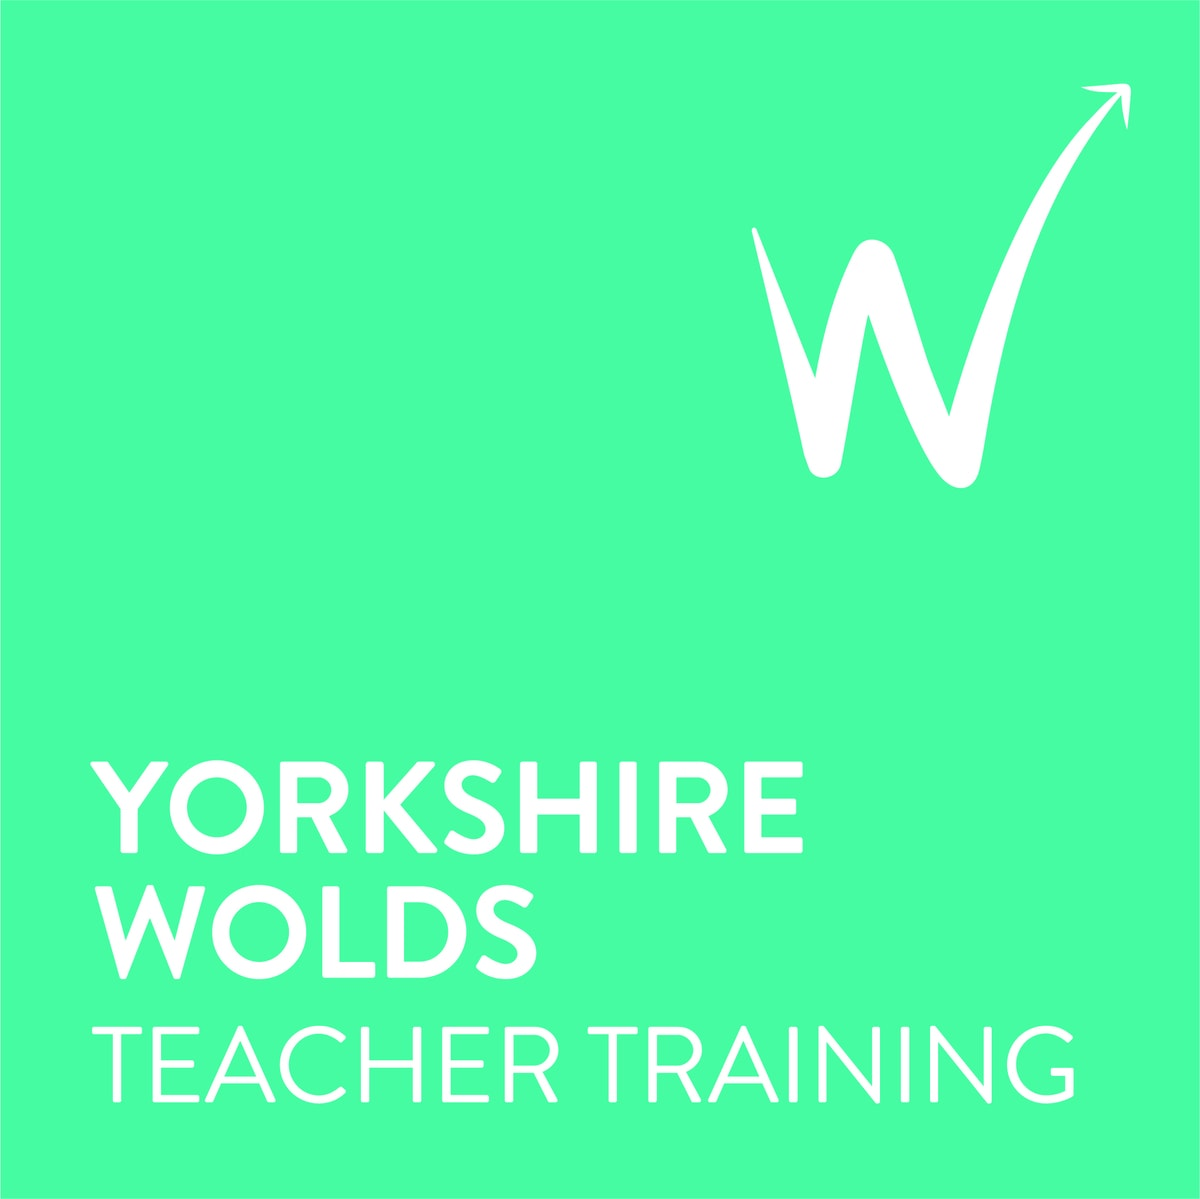 Yorkshire Wolds Teacher Training